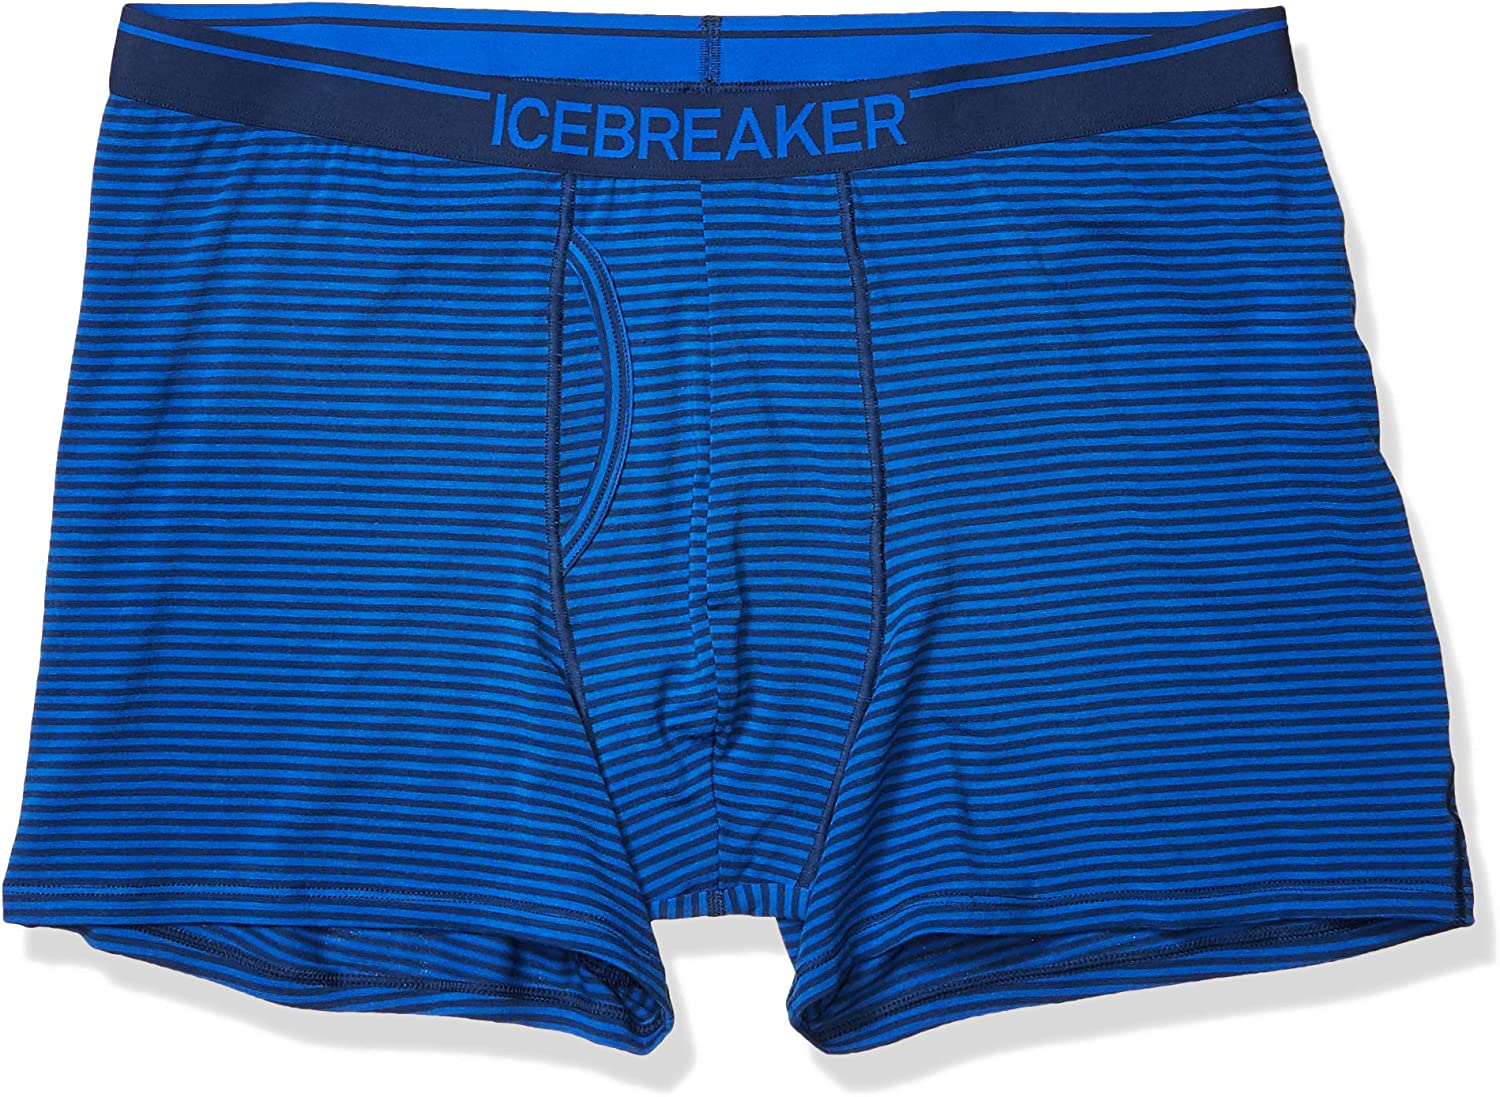 Icebreaker Men's Anatomica Boxers with Fly